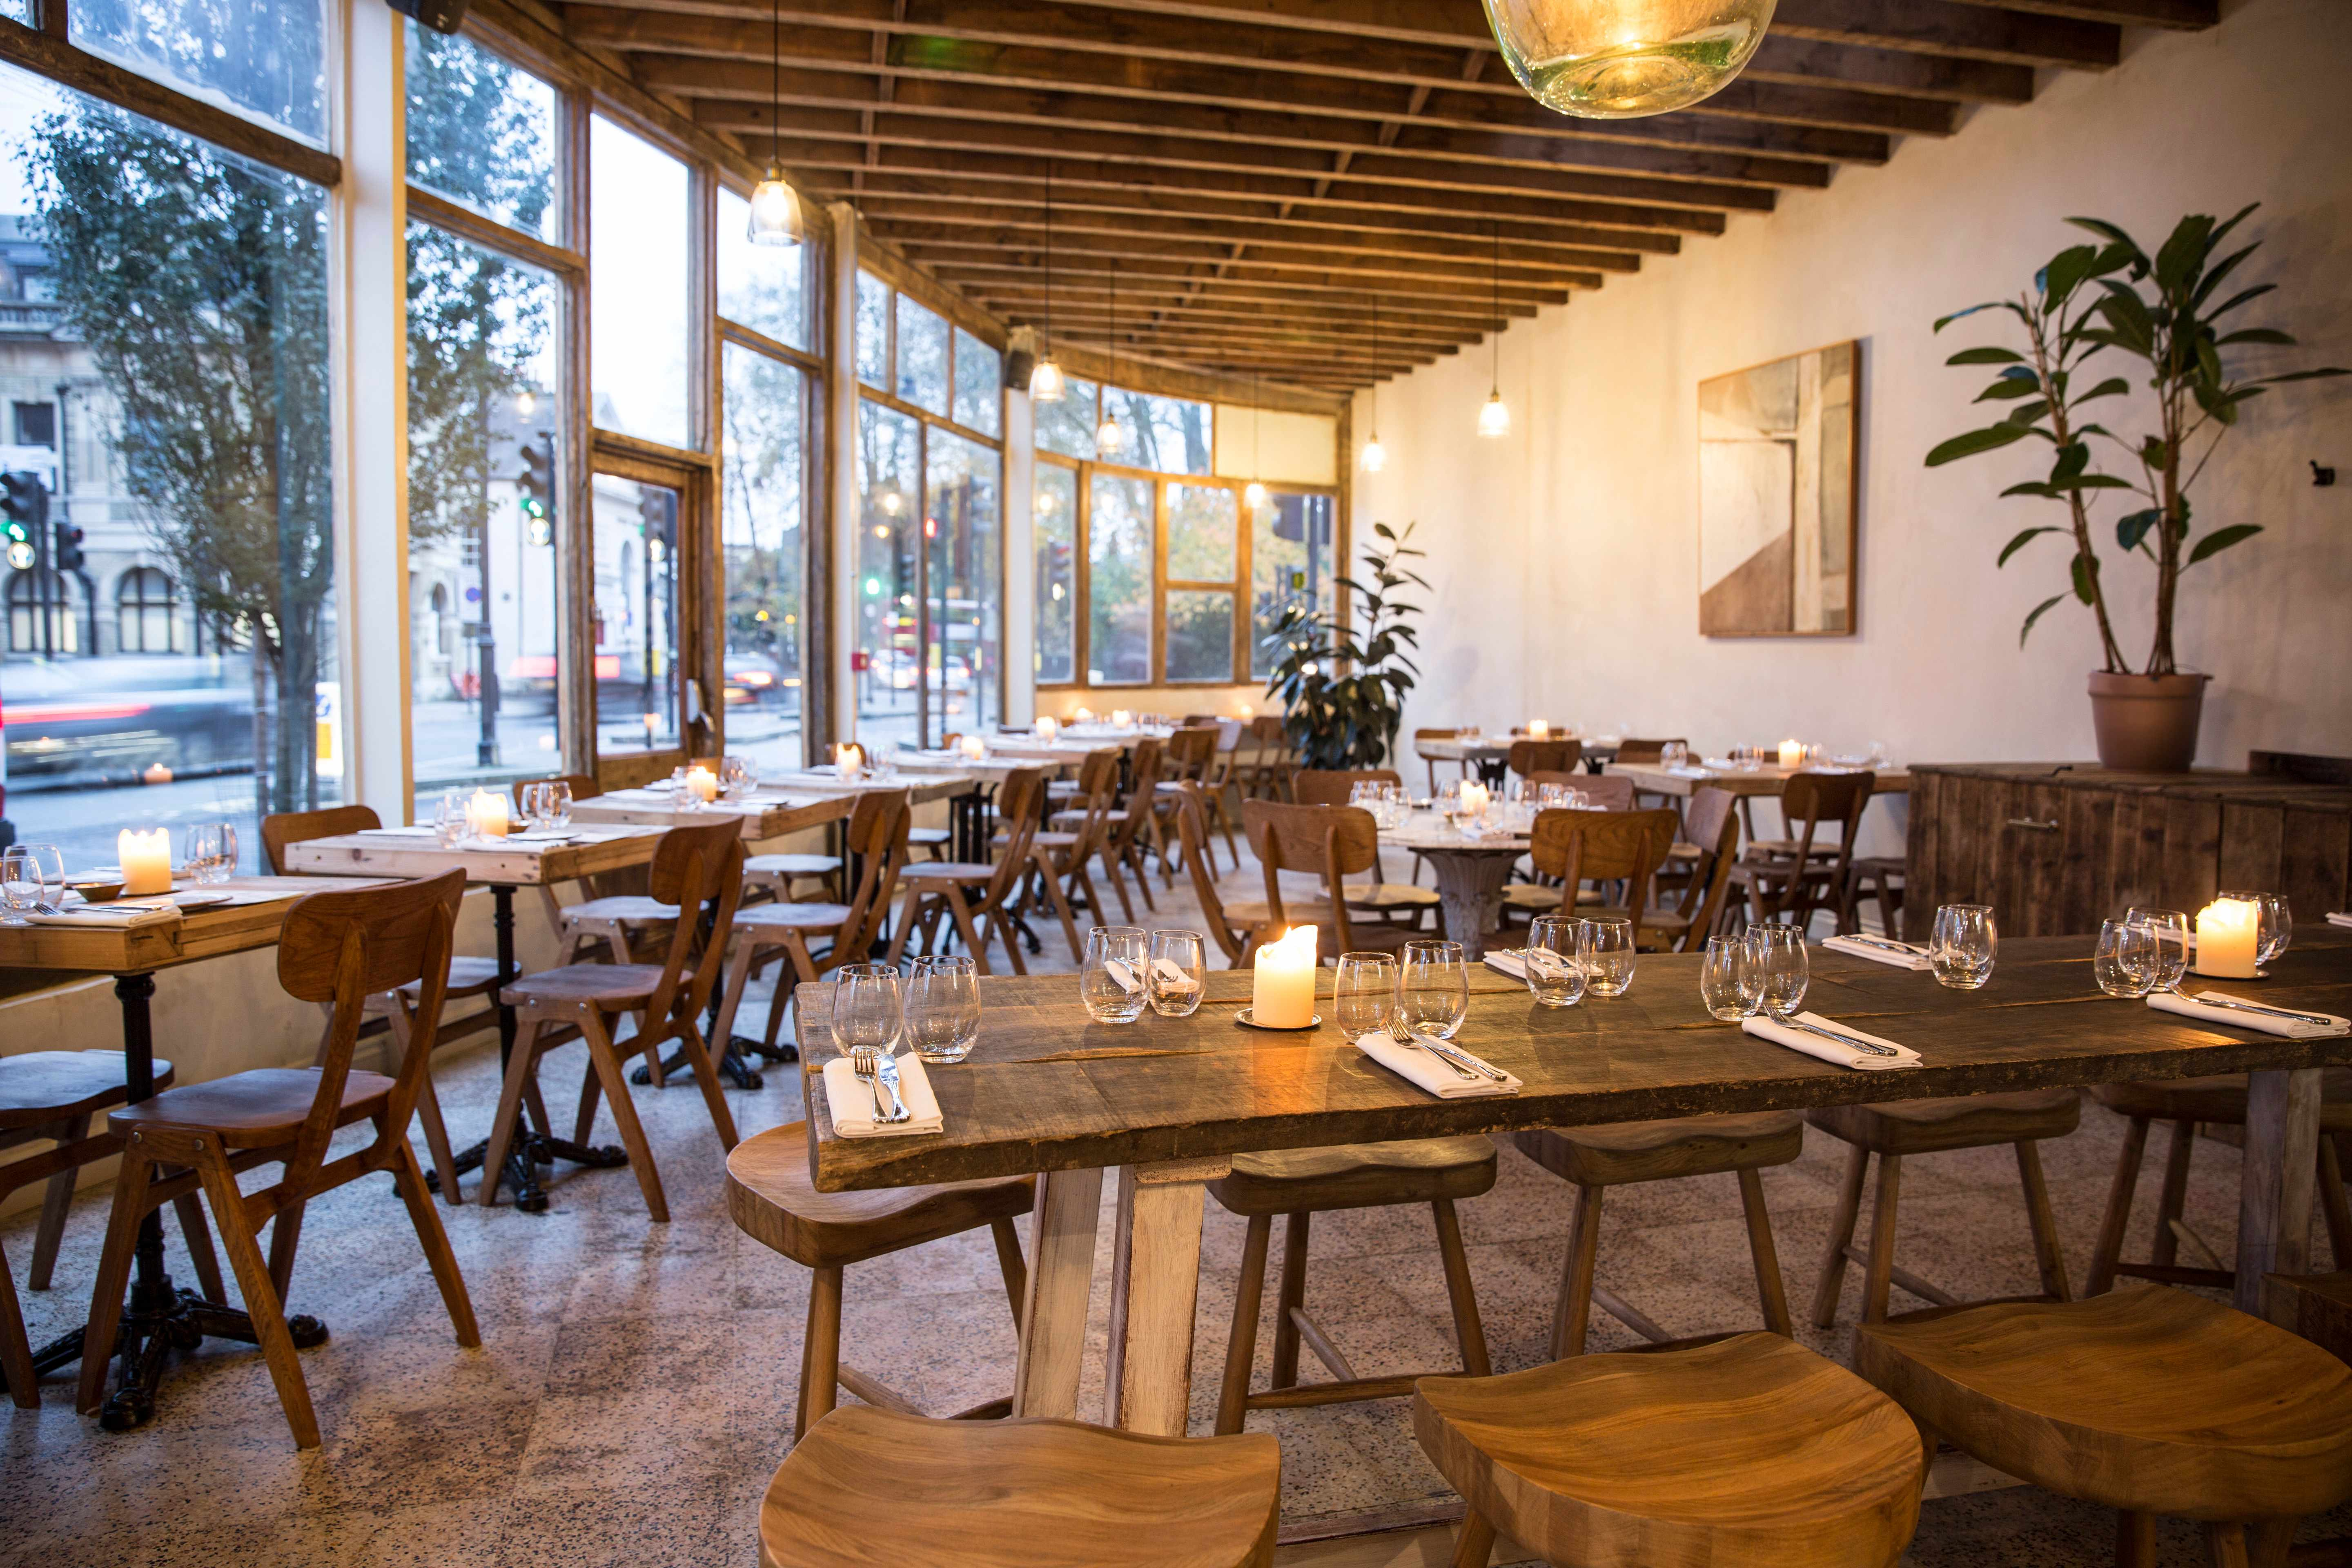 Exposed wooden rafters, wooden floors and matching tables. Bright and breeze, big glass winds with natural light streaming in